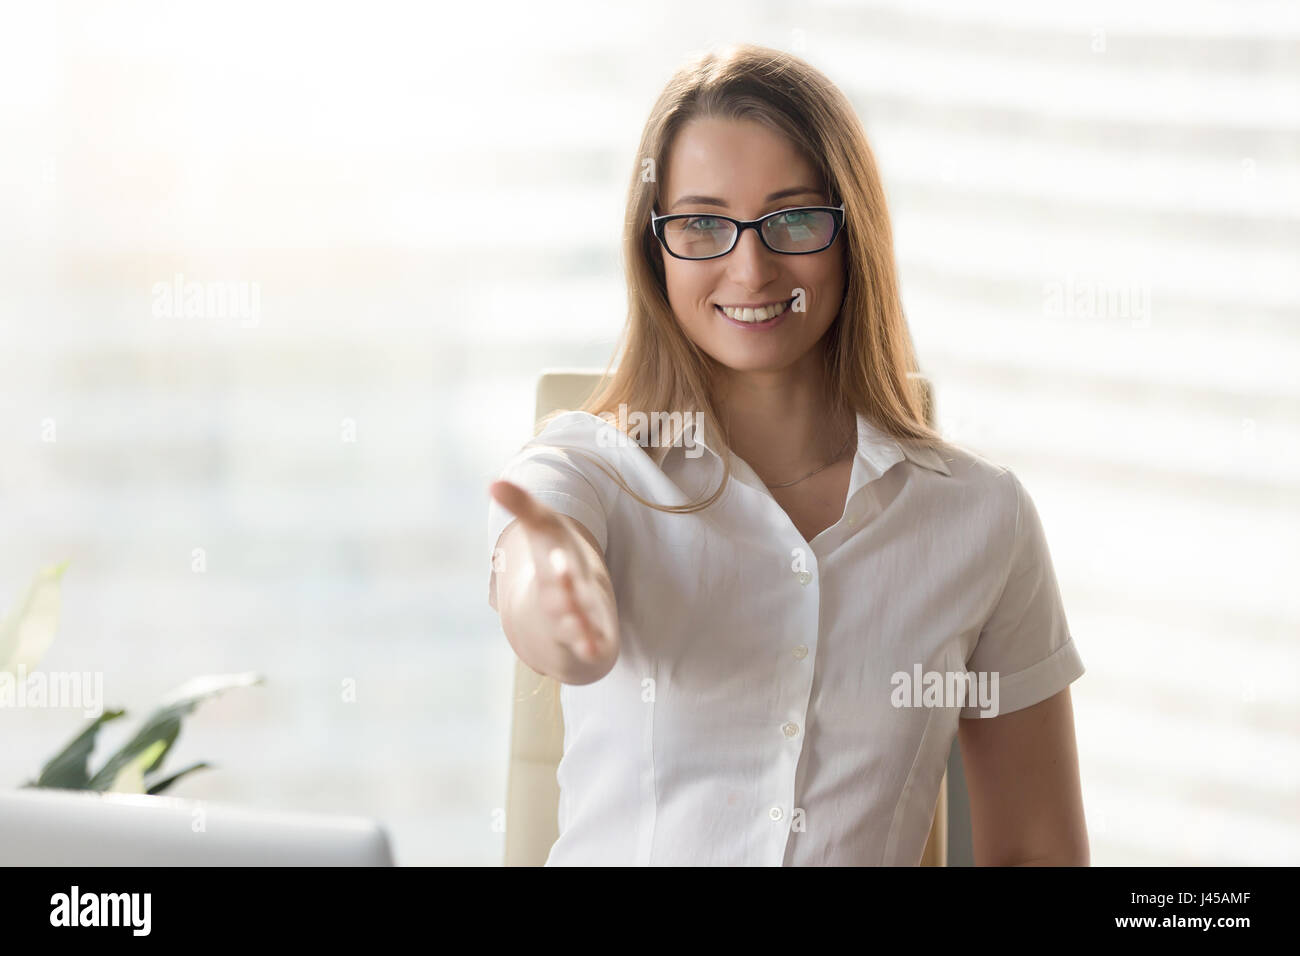 Happy businesswoman reaching hand for handshake Photo Stock